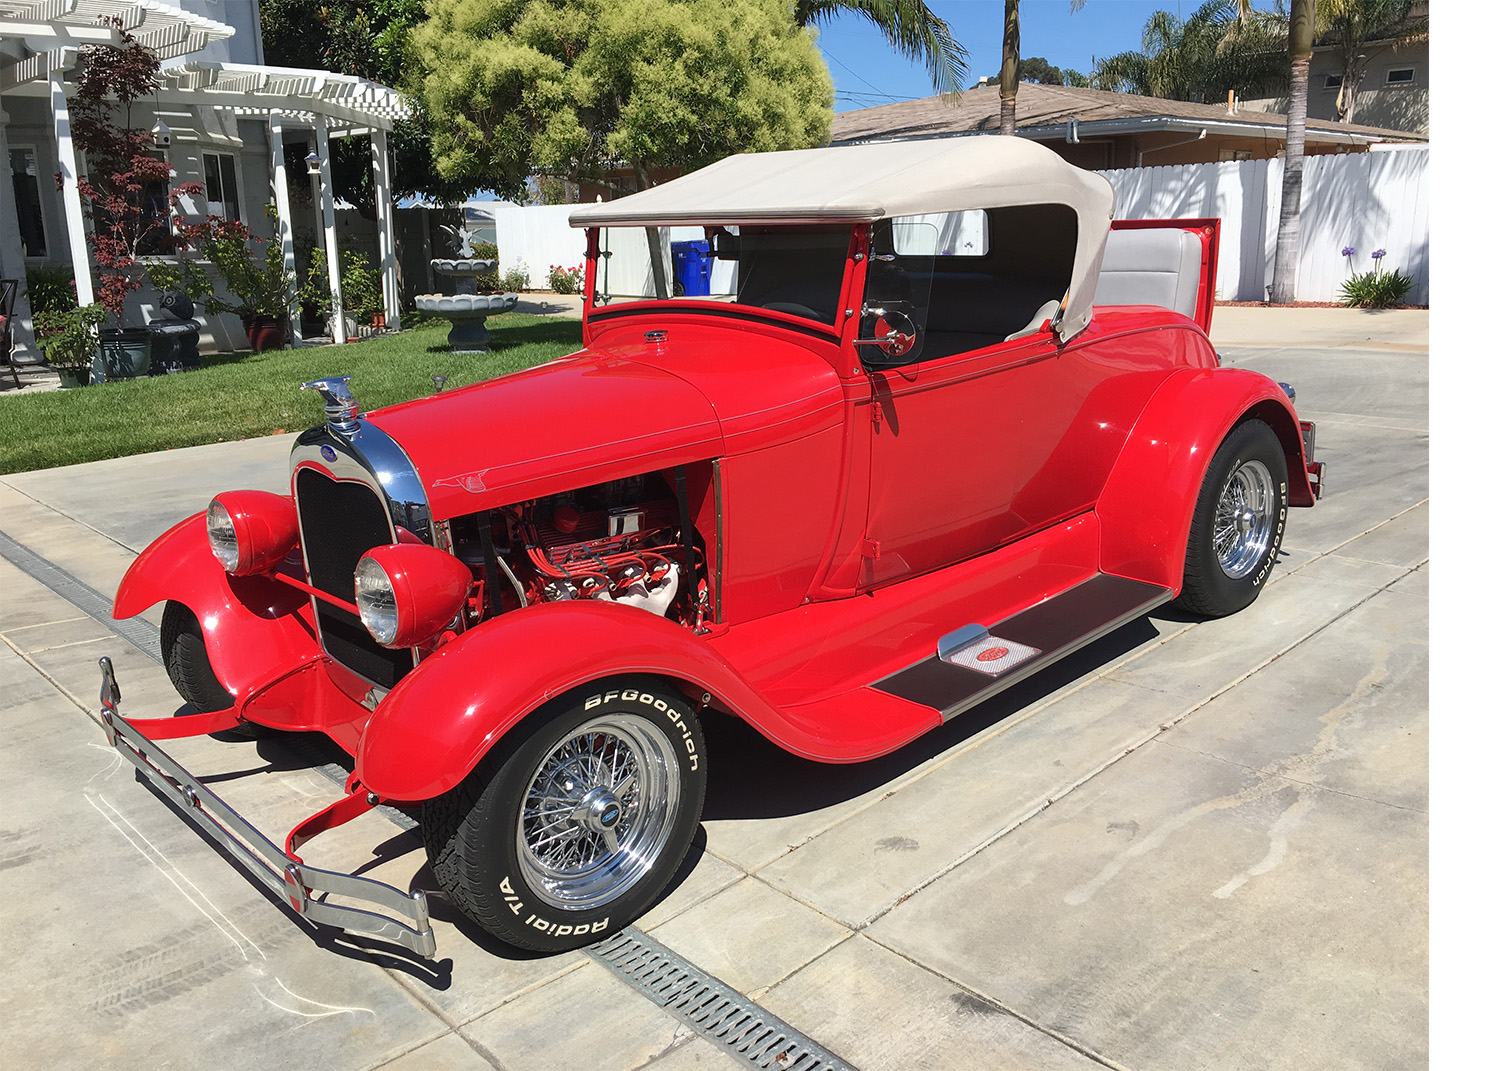 Classic Car Insurance At Poway General In San Diego, CA